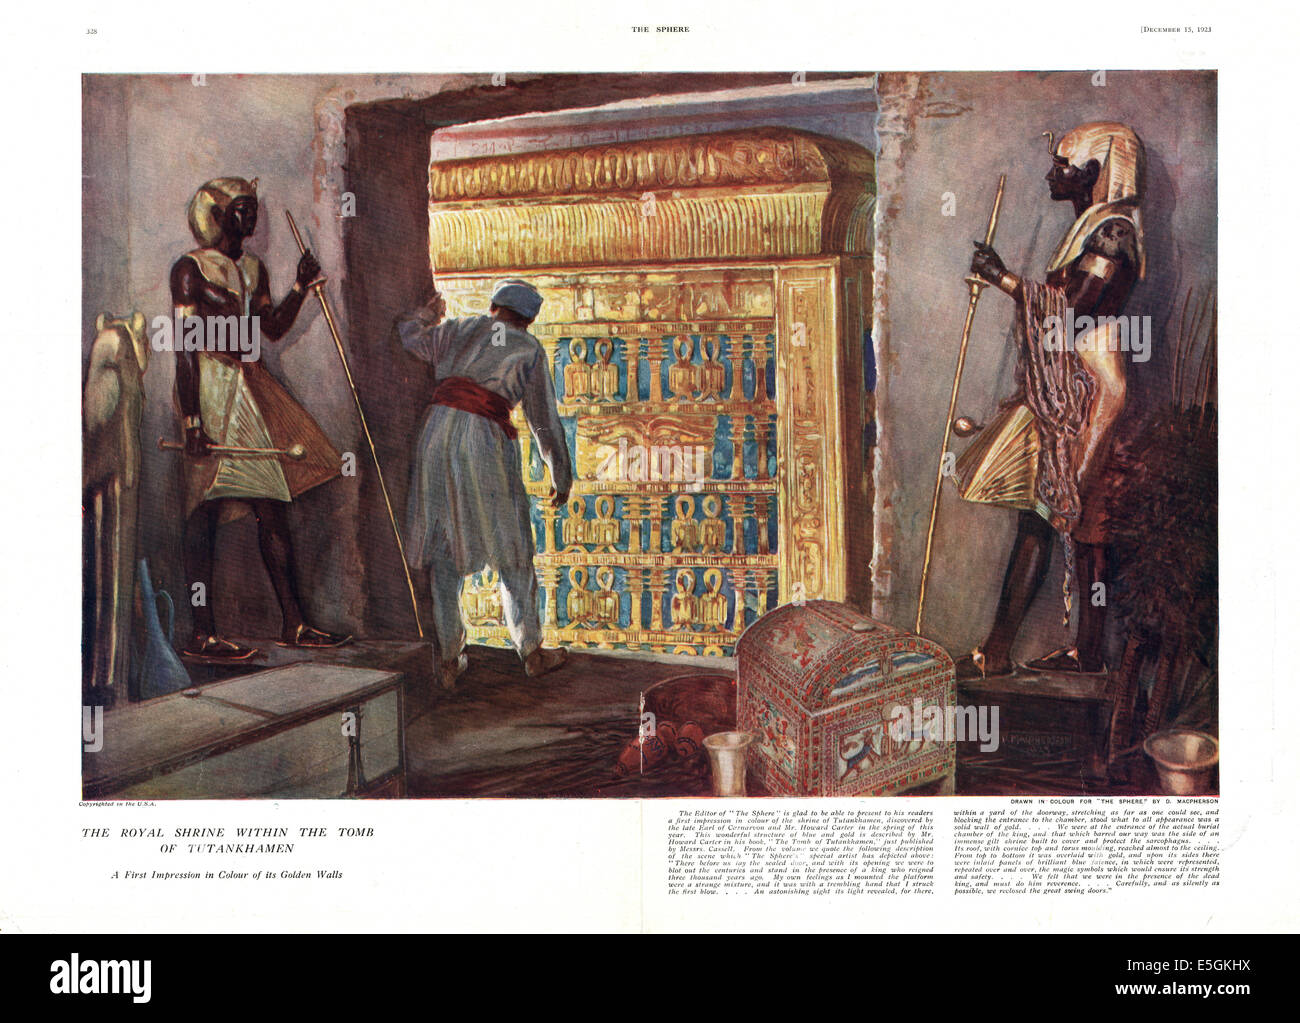 1923 The Sphere magazine illustration of the discovery of Tutenkhamen's tomb in Egypt - Stock Image